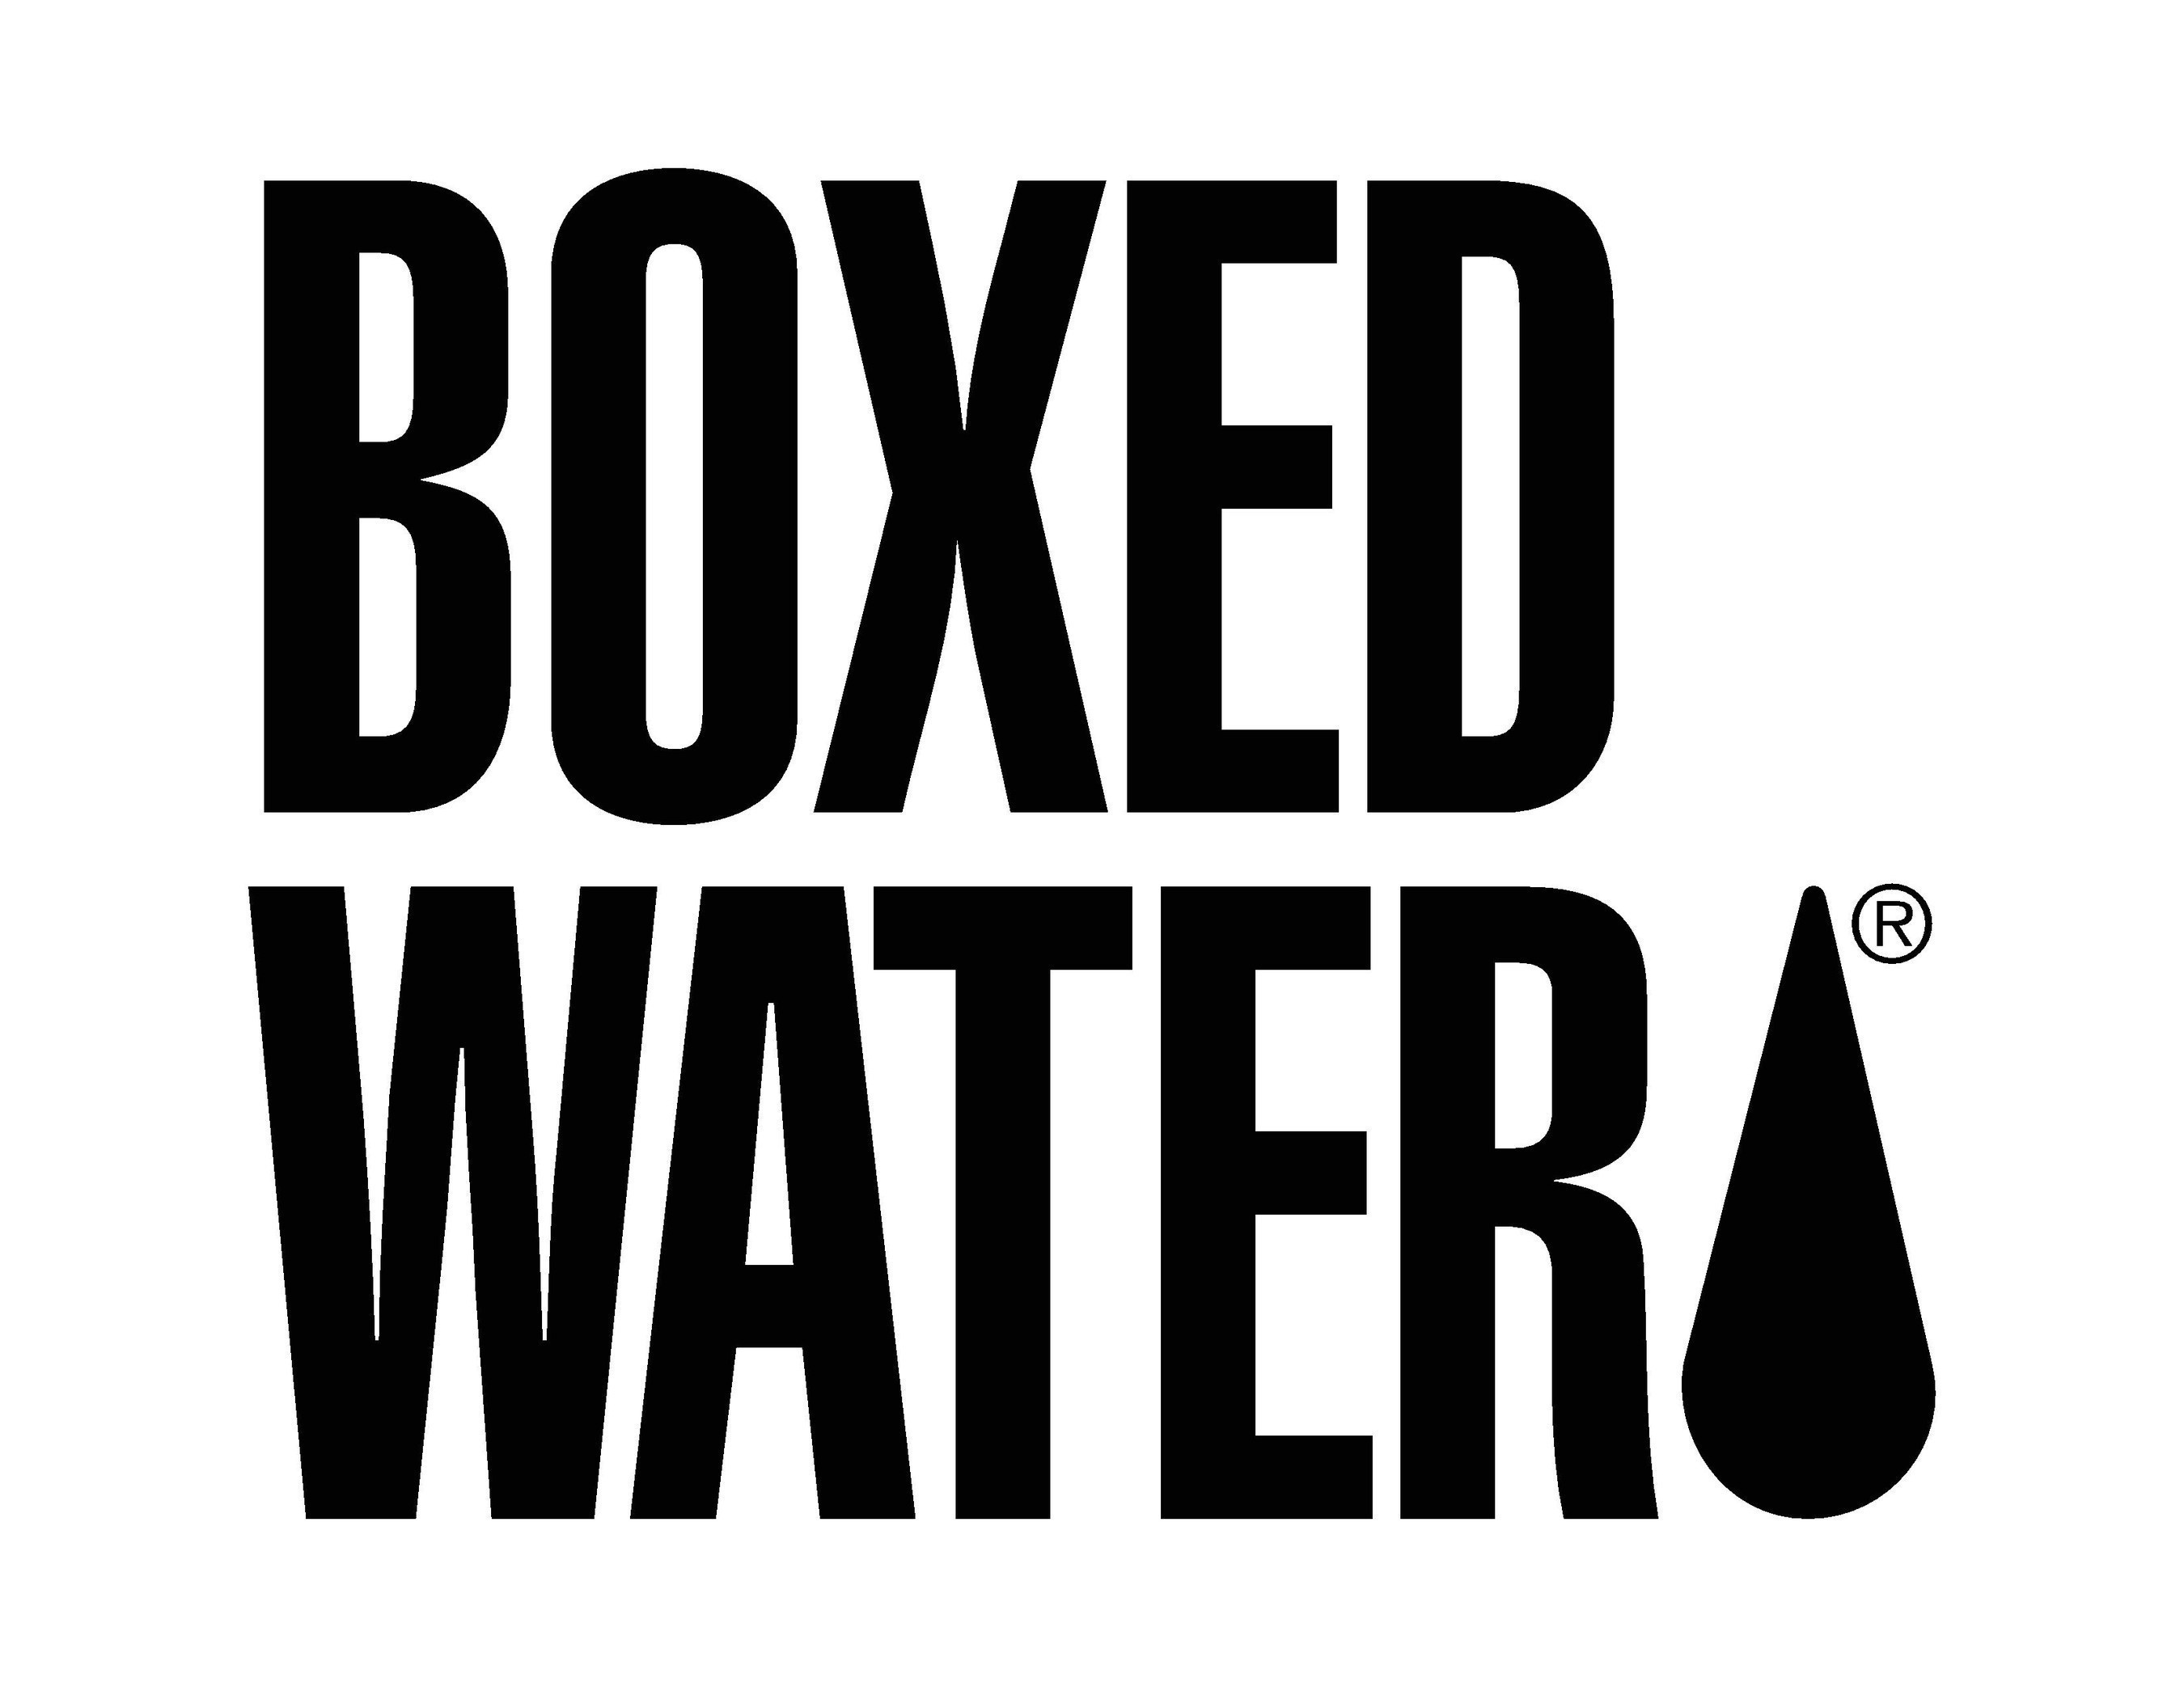 Boxed Water Is Better (PRNewsFoto/Boxed Water)